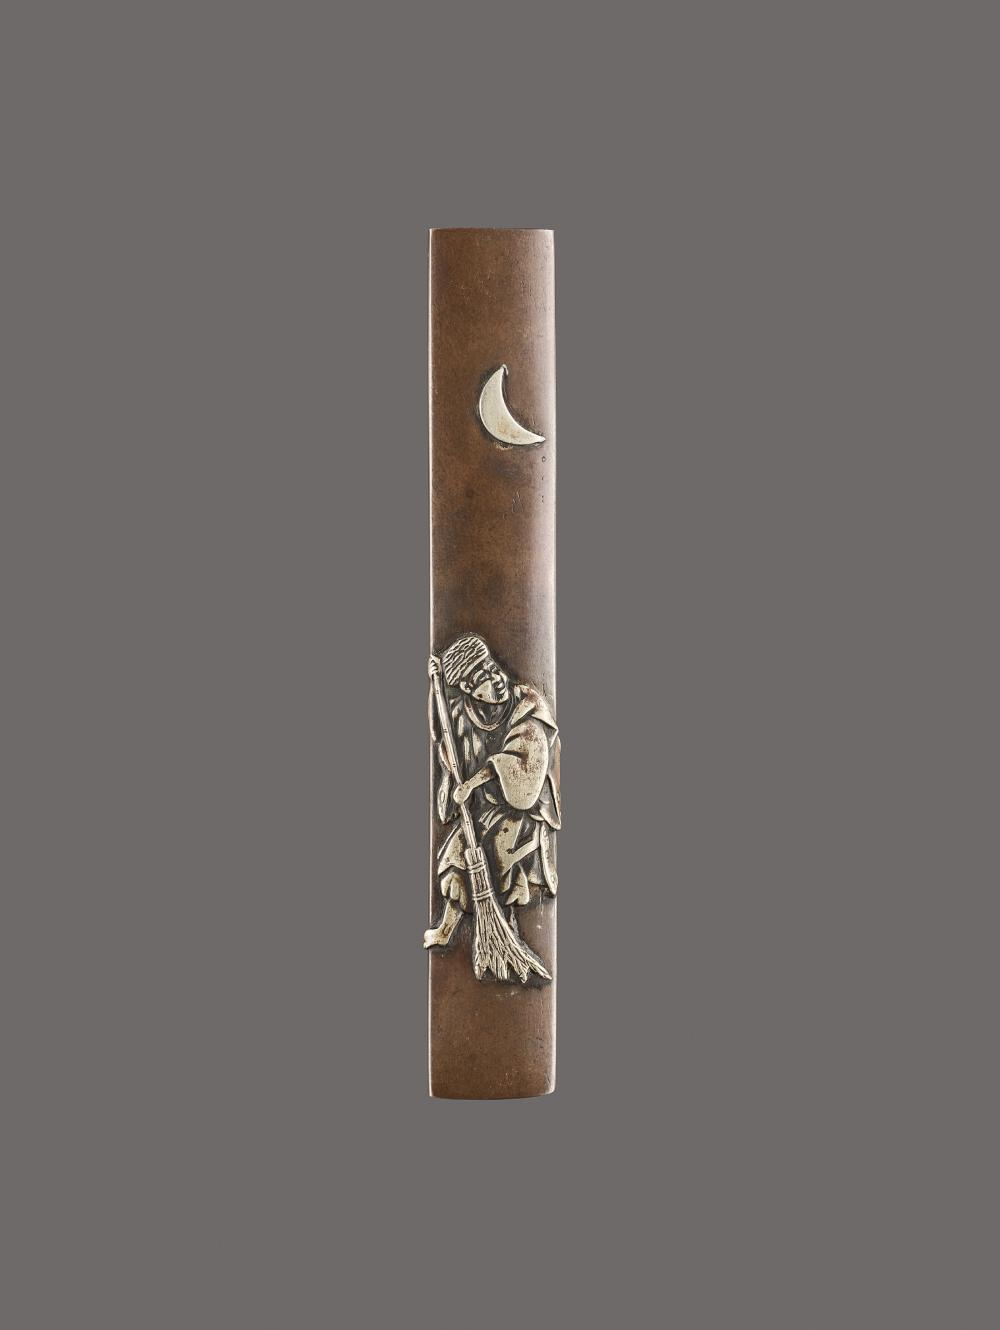 A SENTOKU AND SILVER KOZUKA HANDLE DEPICTING A MAN WITH A BROOM UNDER THE CRESCENT MOON